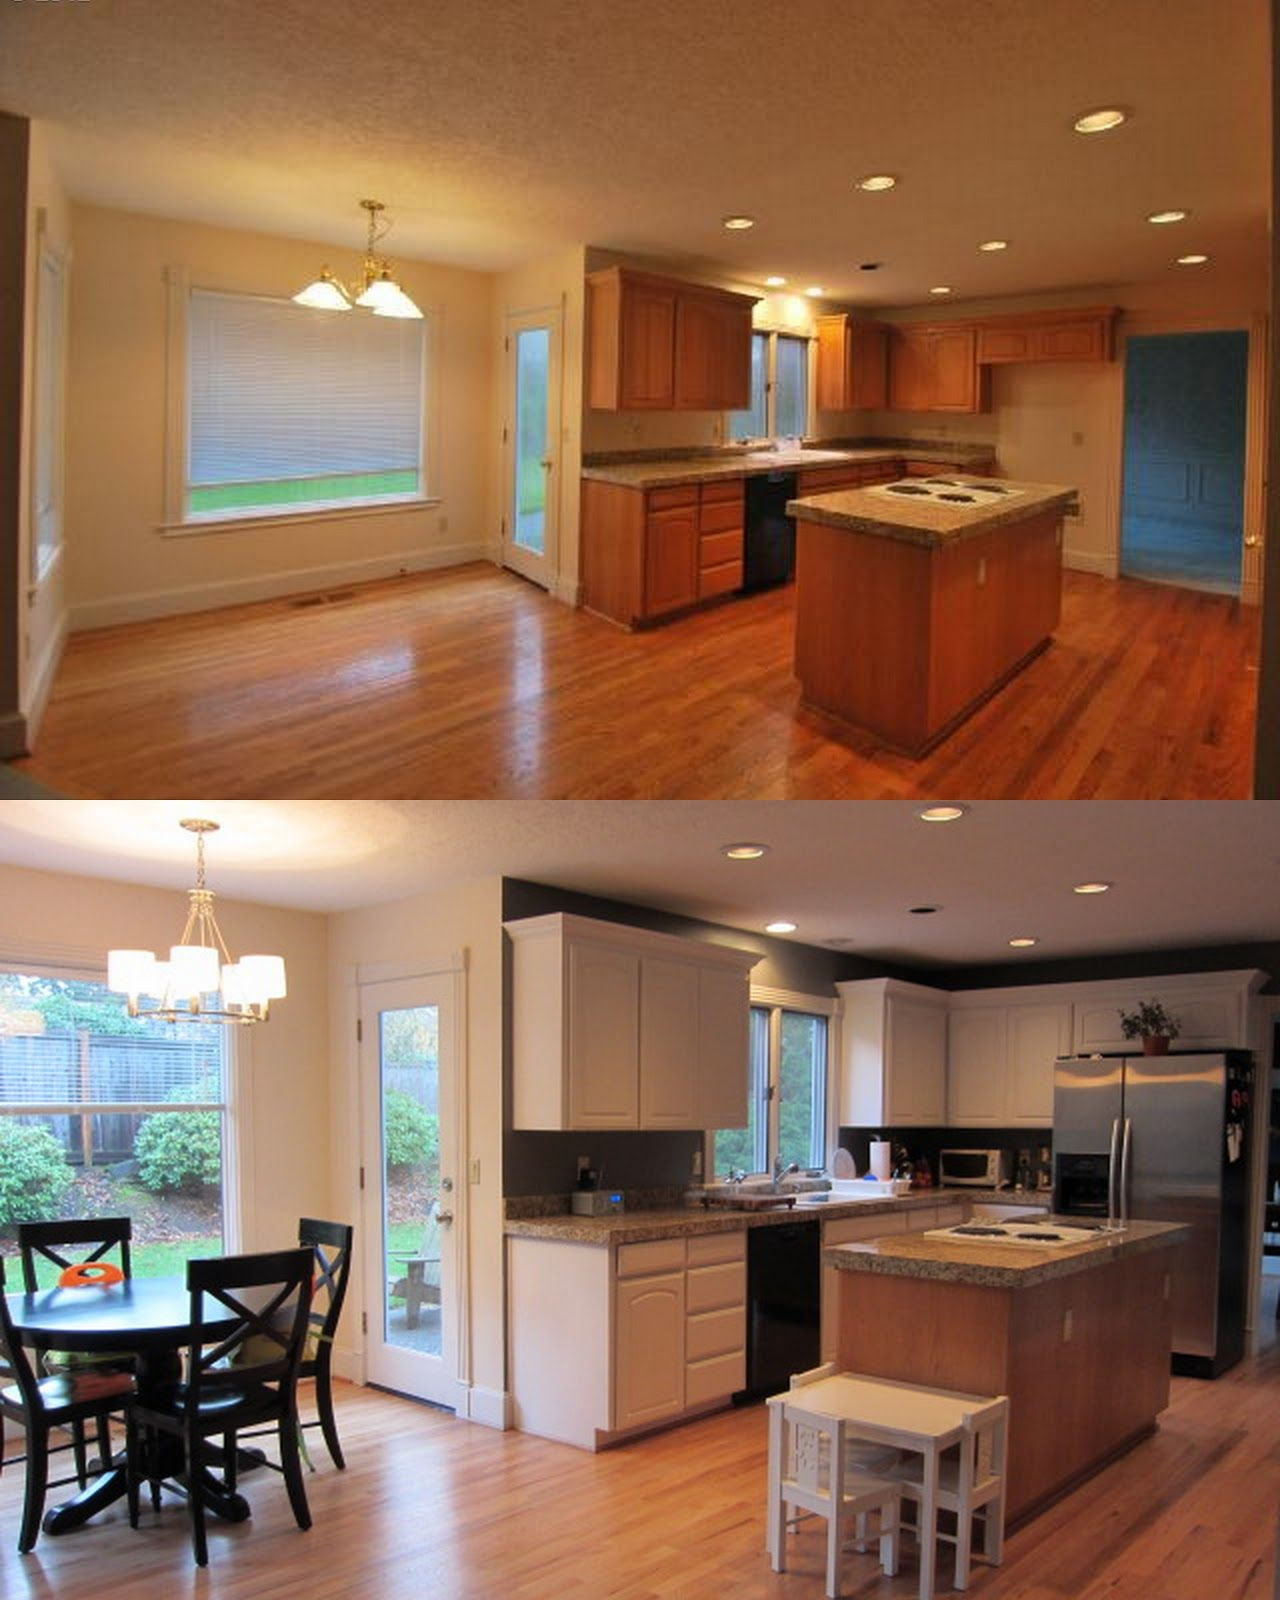 Redone Kitchen Cabinets: The Oregon Shirzads: Painting White Kitchen Cabinets